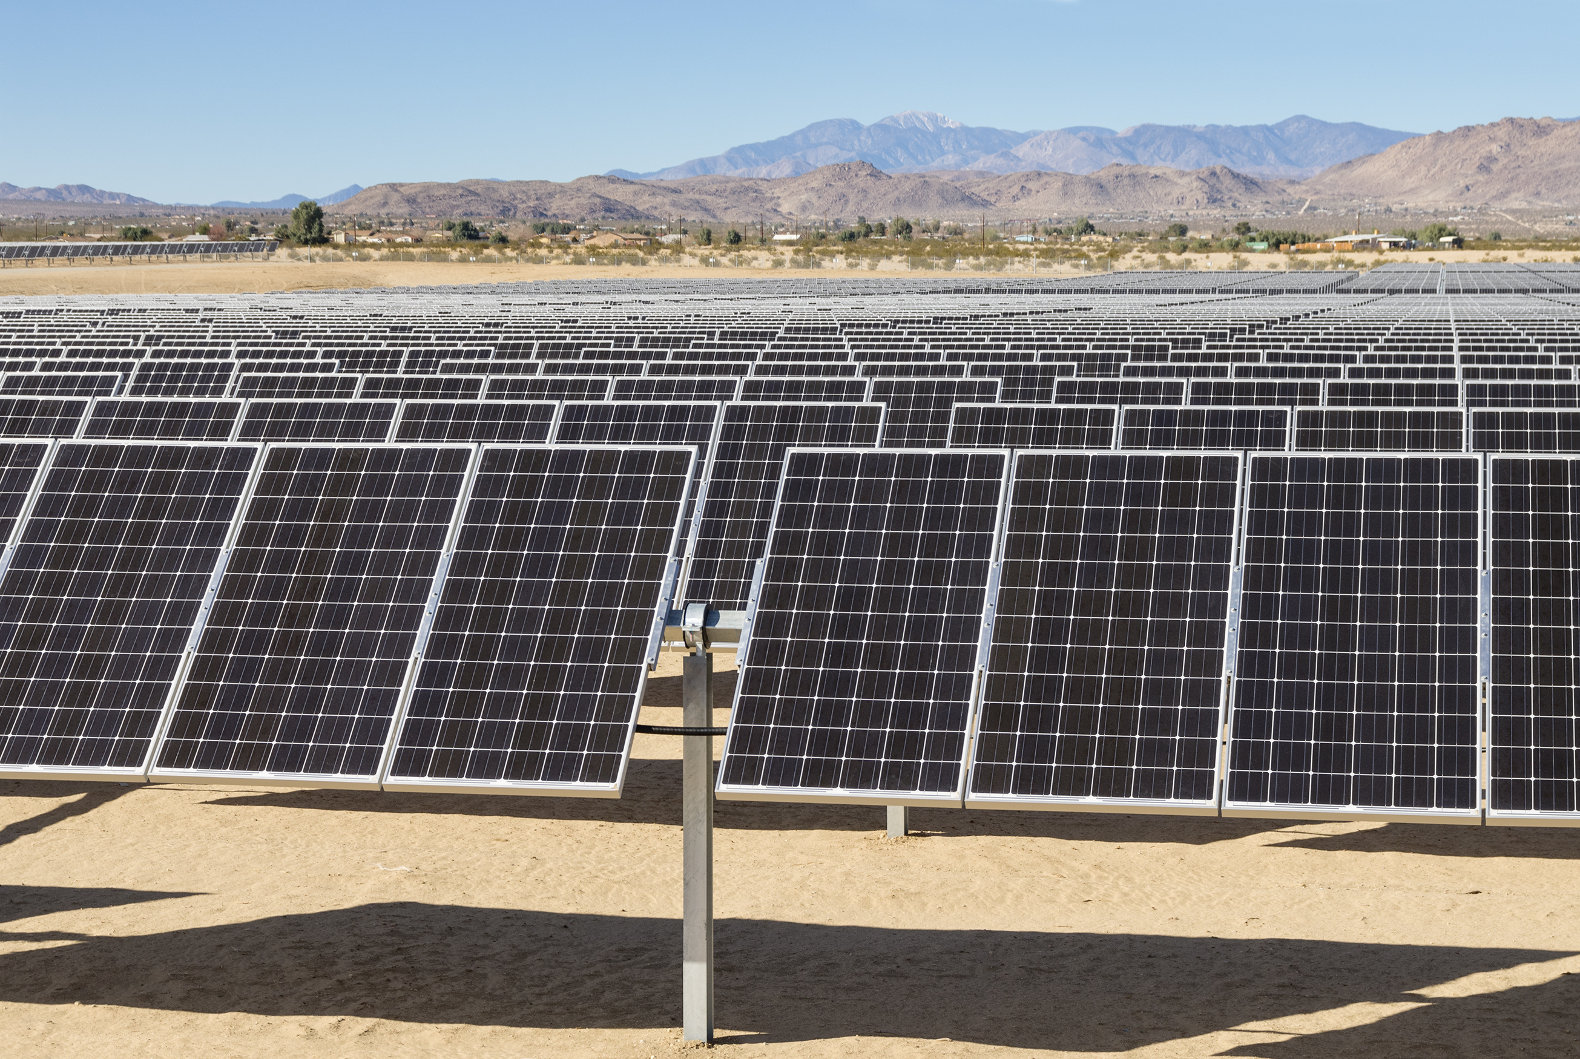 California S New Renewable Energy Law Could Edge Rooftop